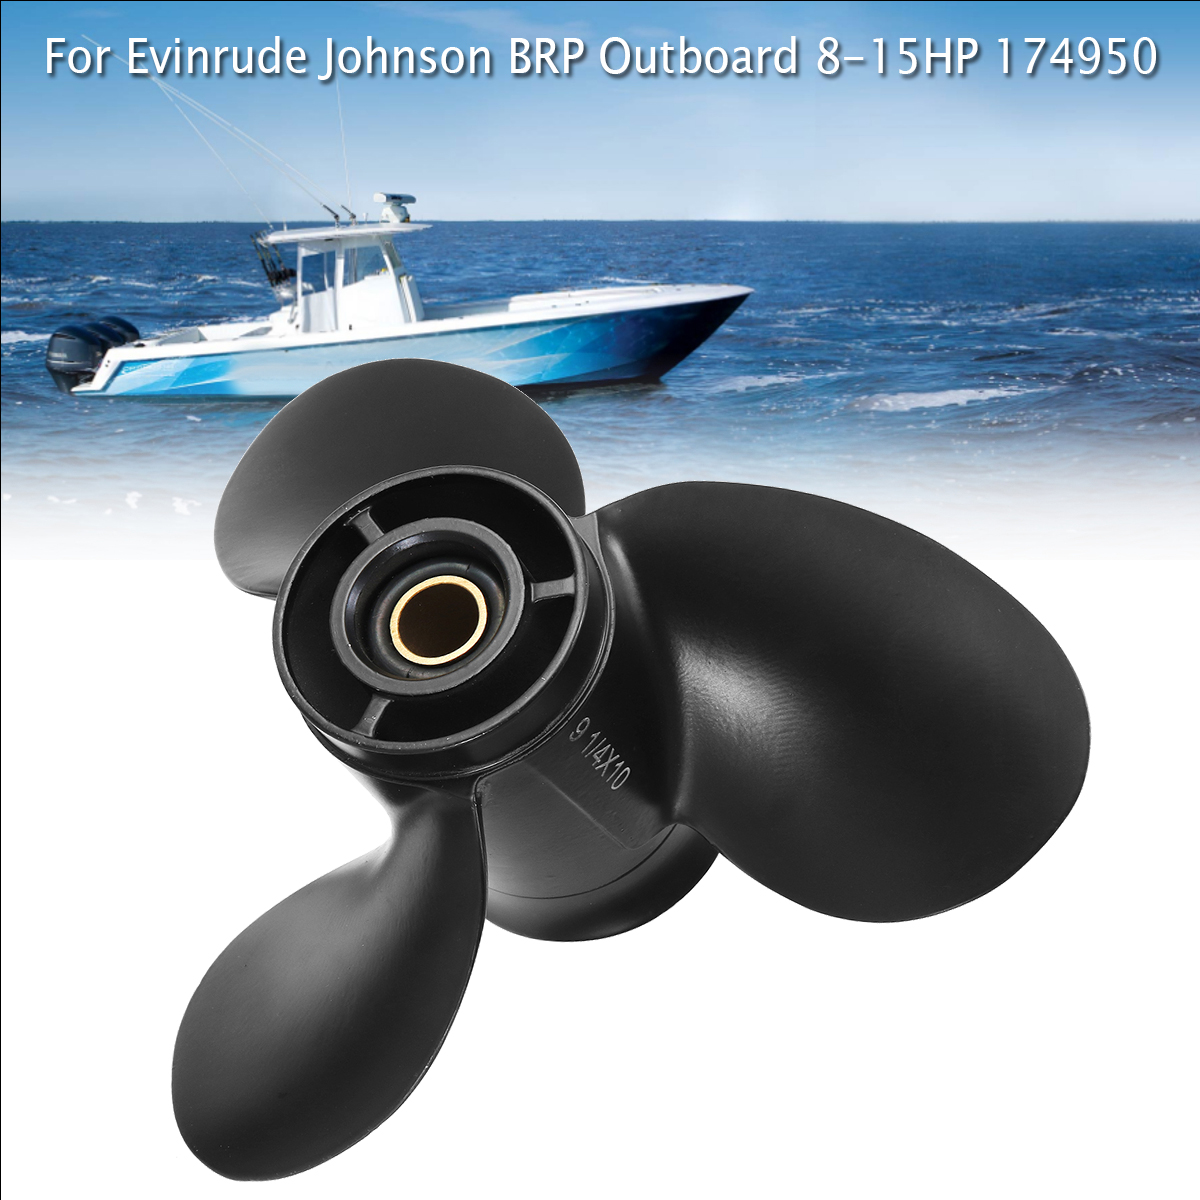 US $31 41 31% OFF|174950 / 778772 For Evinrude Johnson BRP 8 15HP 9 1/4 x  10 Outboard Propeller Aluminum Alloy Black 3 Blades 13 Spline Tooths-in